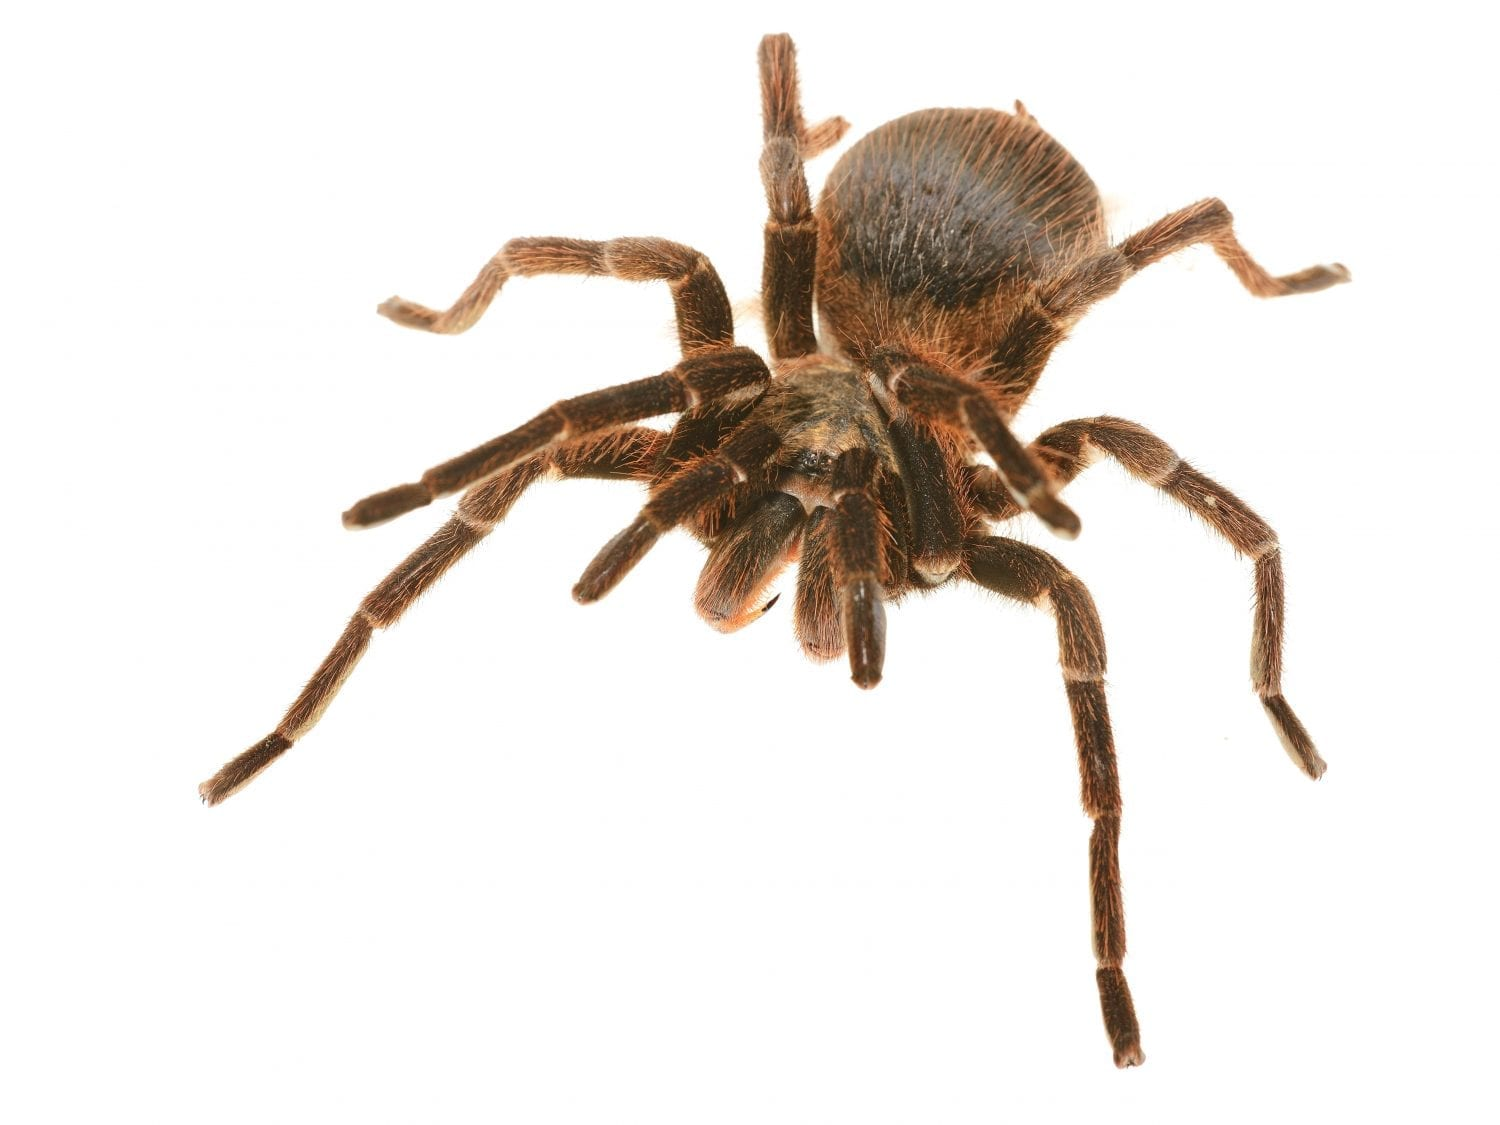 7 Natural Ways to Keep Spiders Out of Your Home